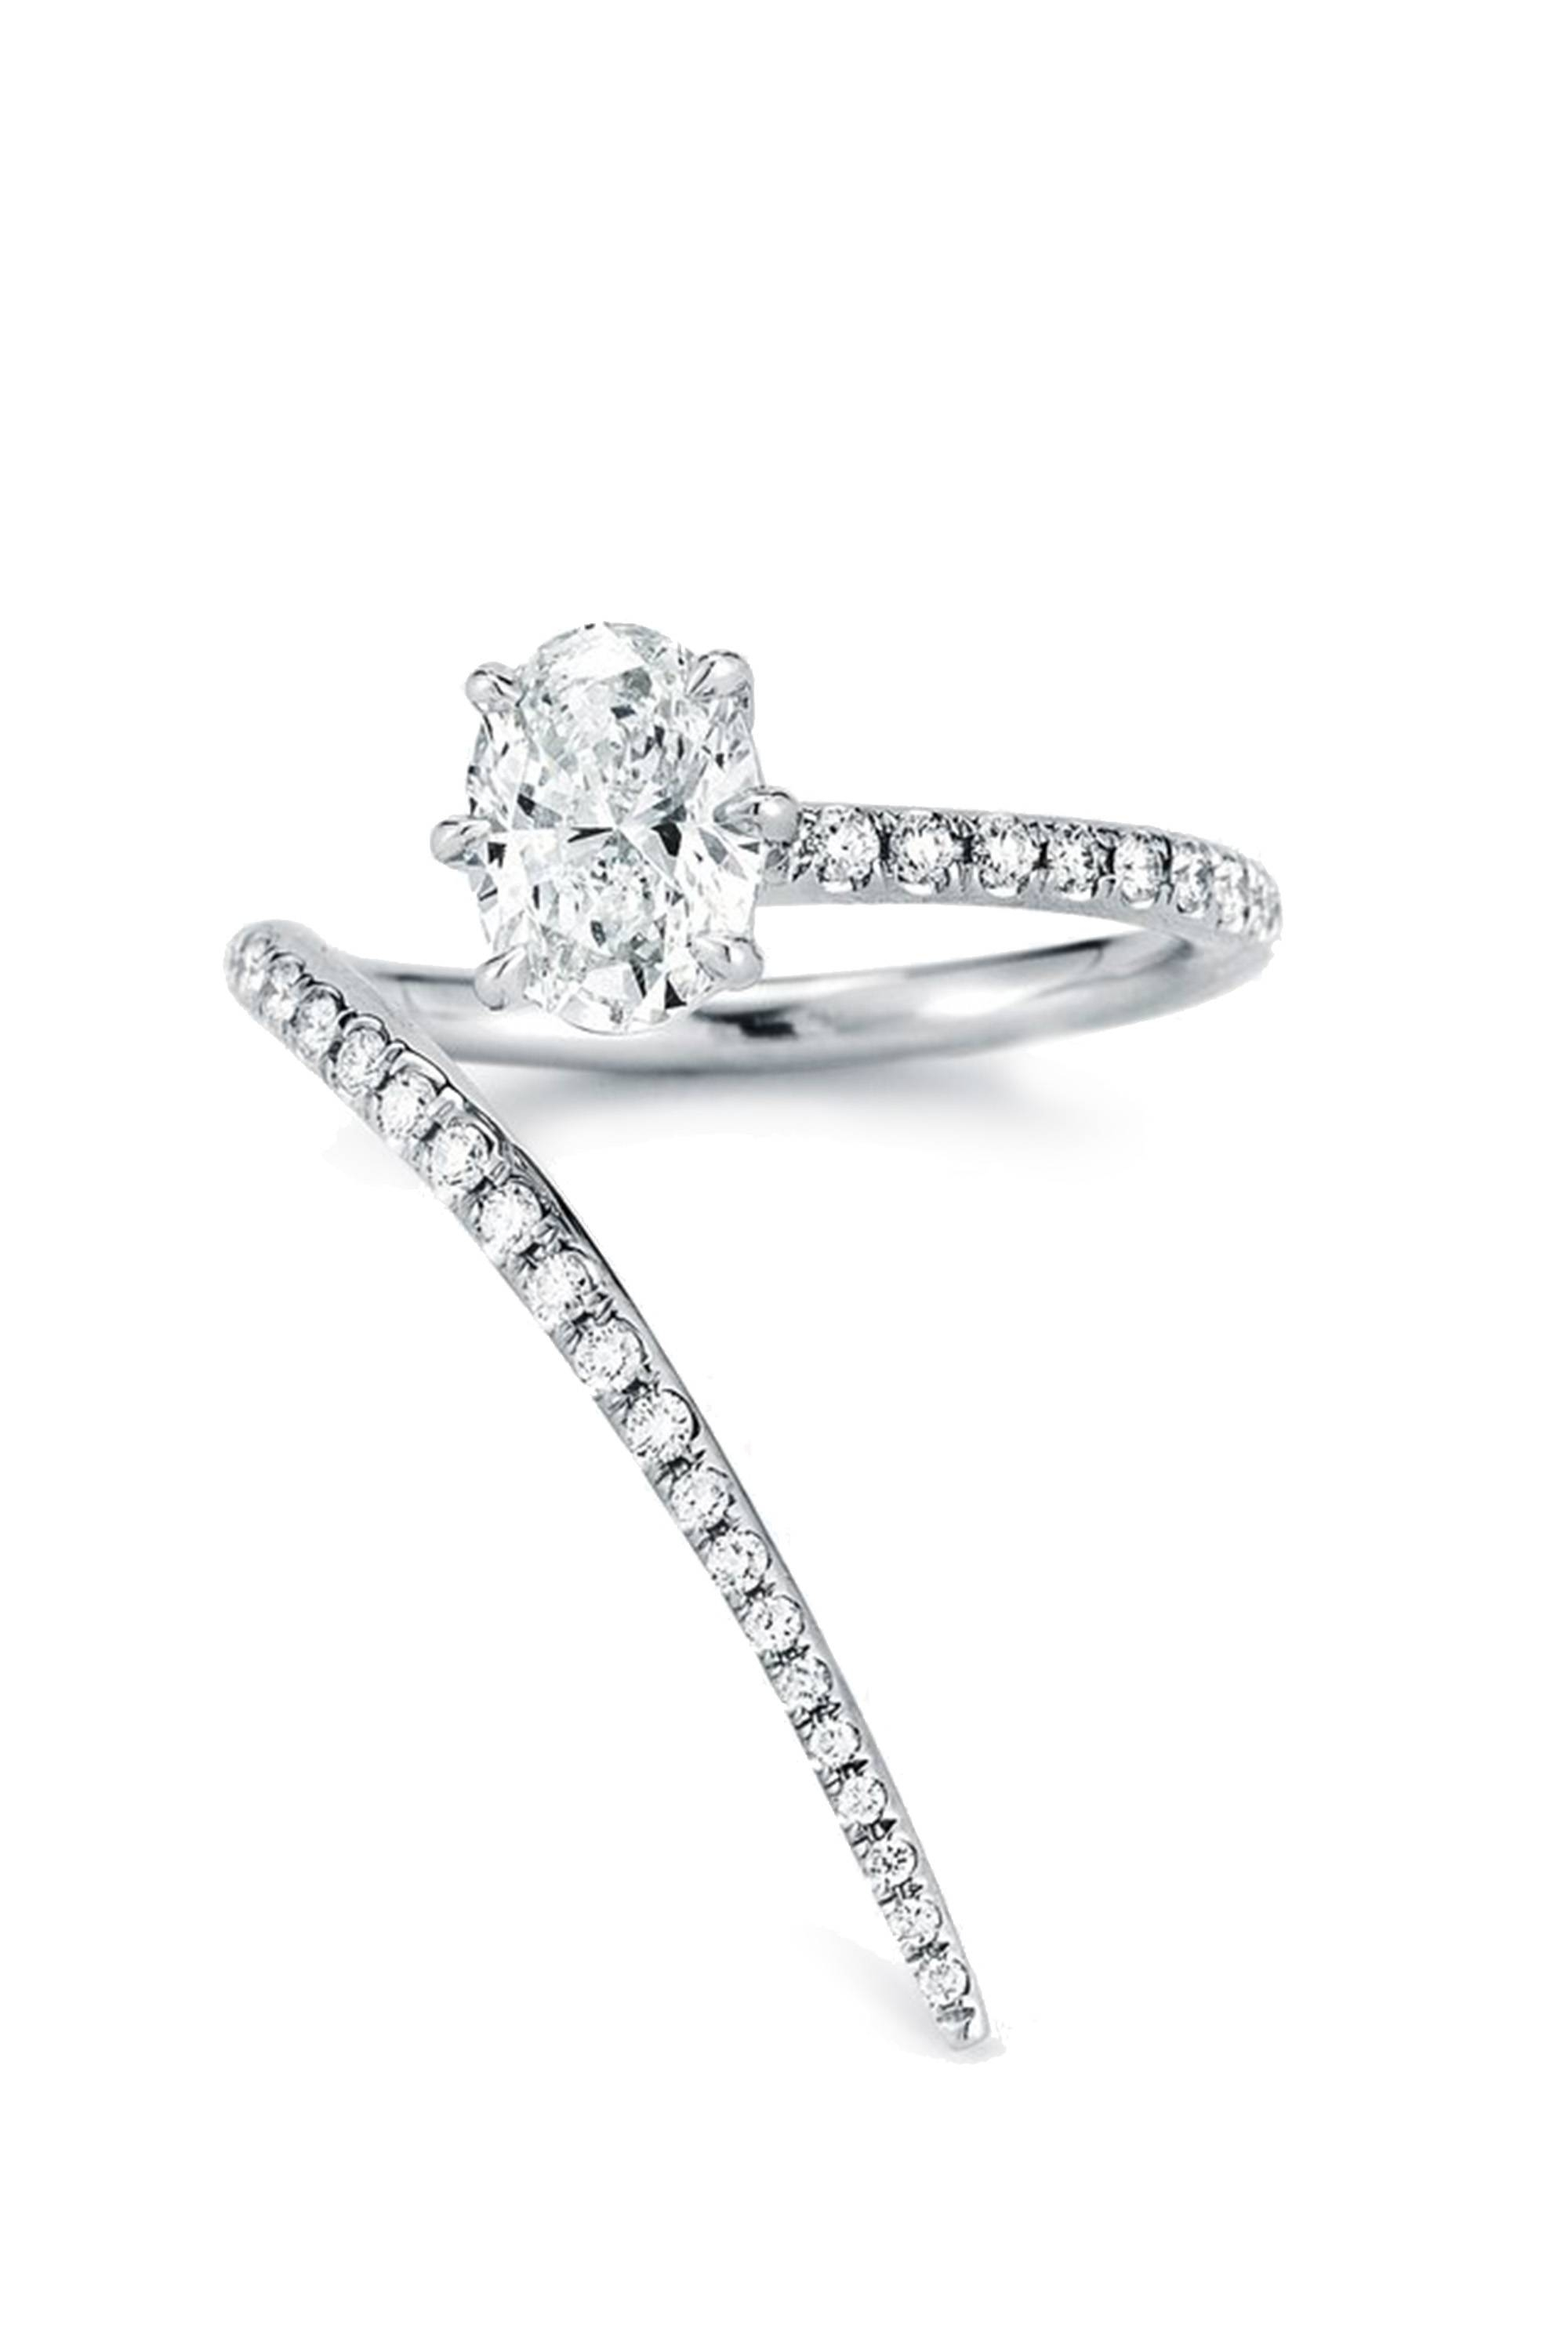 41 Unique Engagement Rings – Beautiful Non Diamond And Unusual Throughout Unusual Diamond Wedding Rings (Gallery 15 of 15)